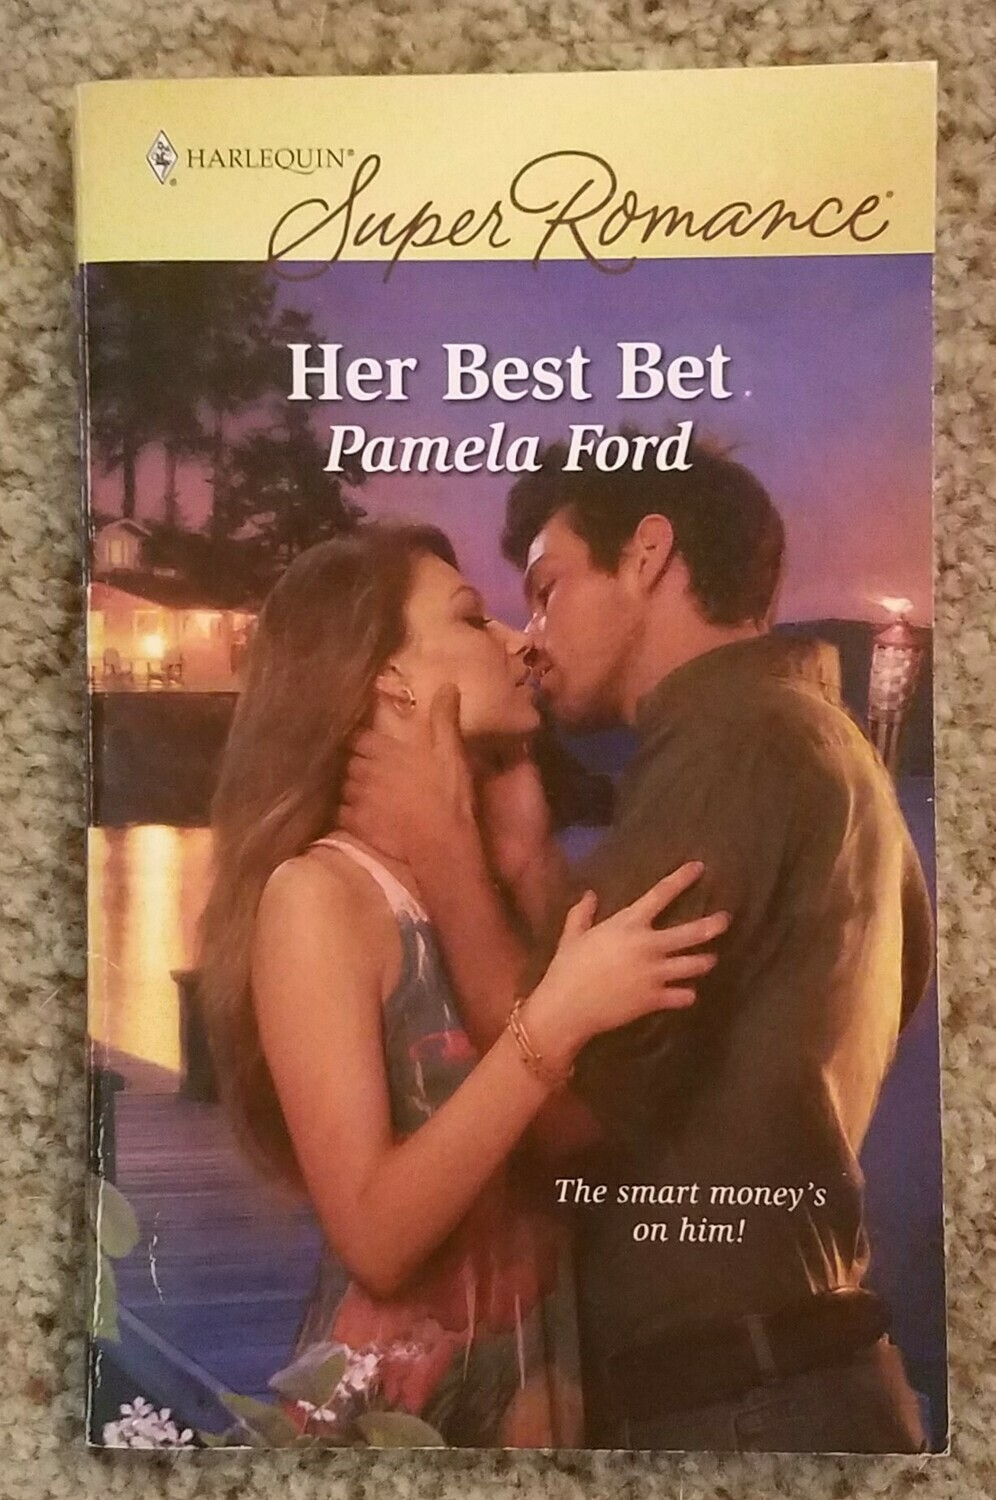 Her Best Bet by Pamela Ford